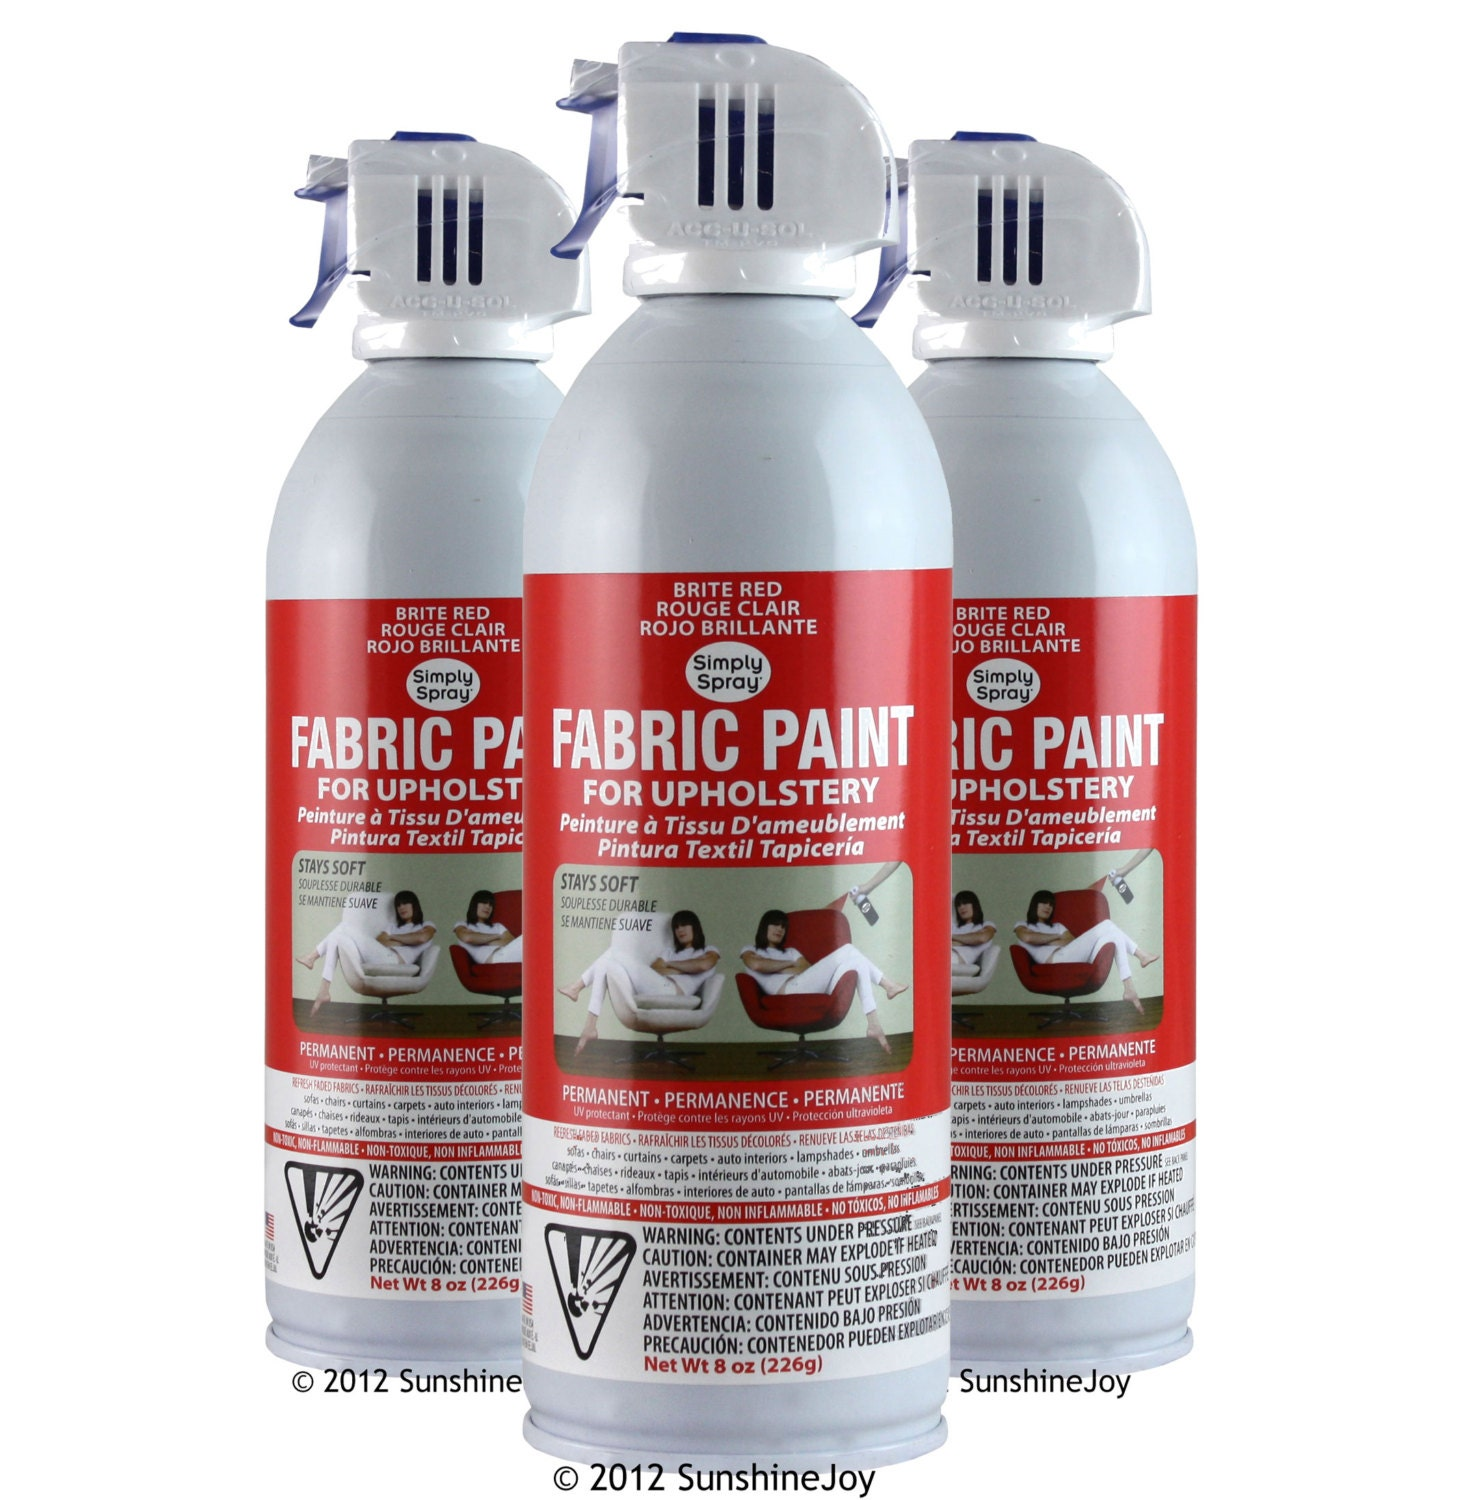 Where To Buy Upholstery Fabric Spray Paint Upholstery Fabric Spray Paint 6 Pack Burgundy Simply